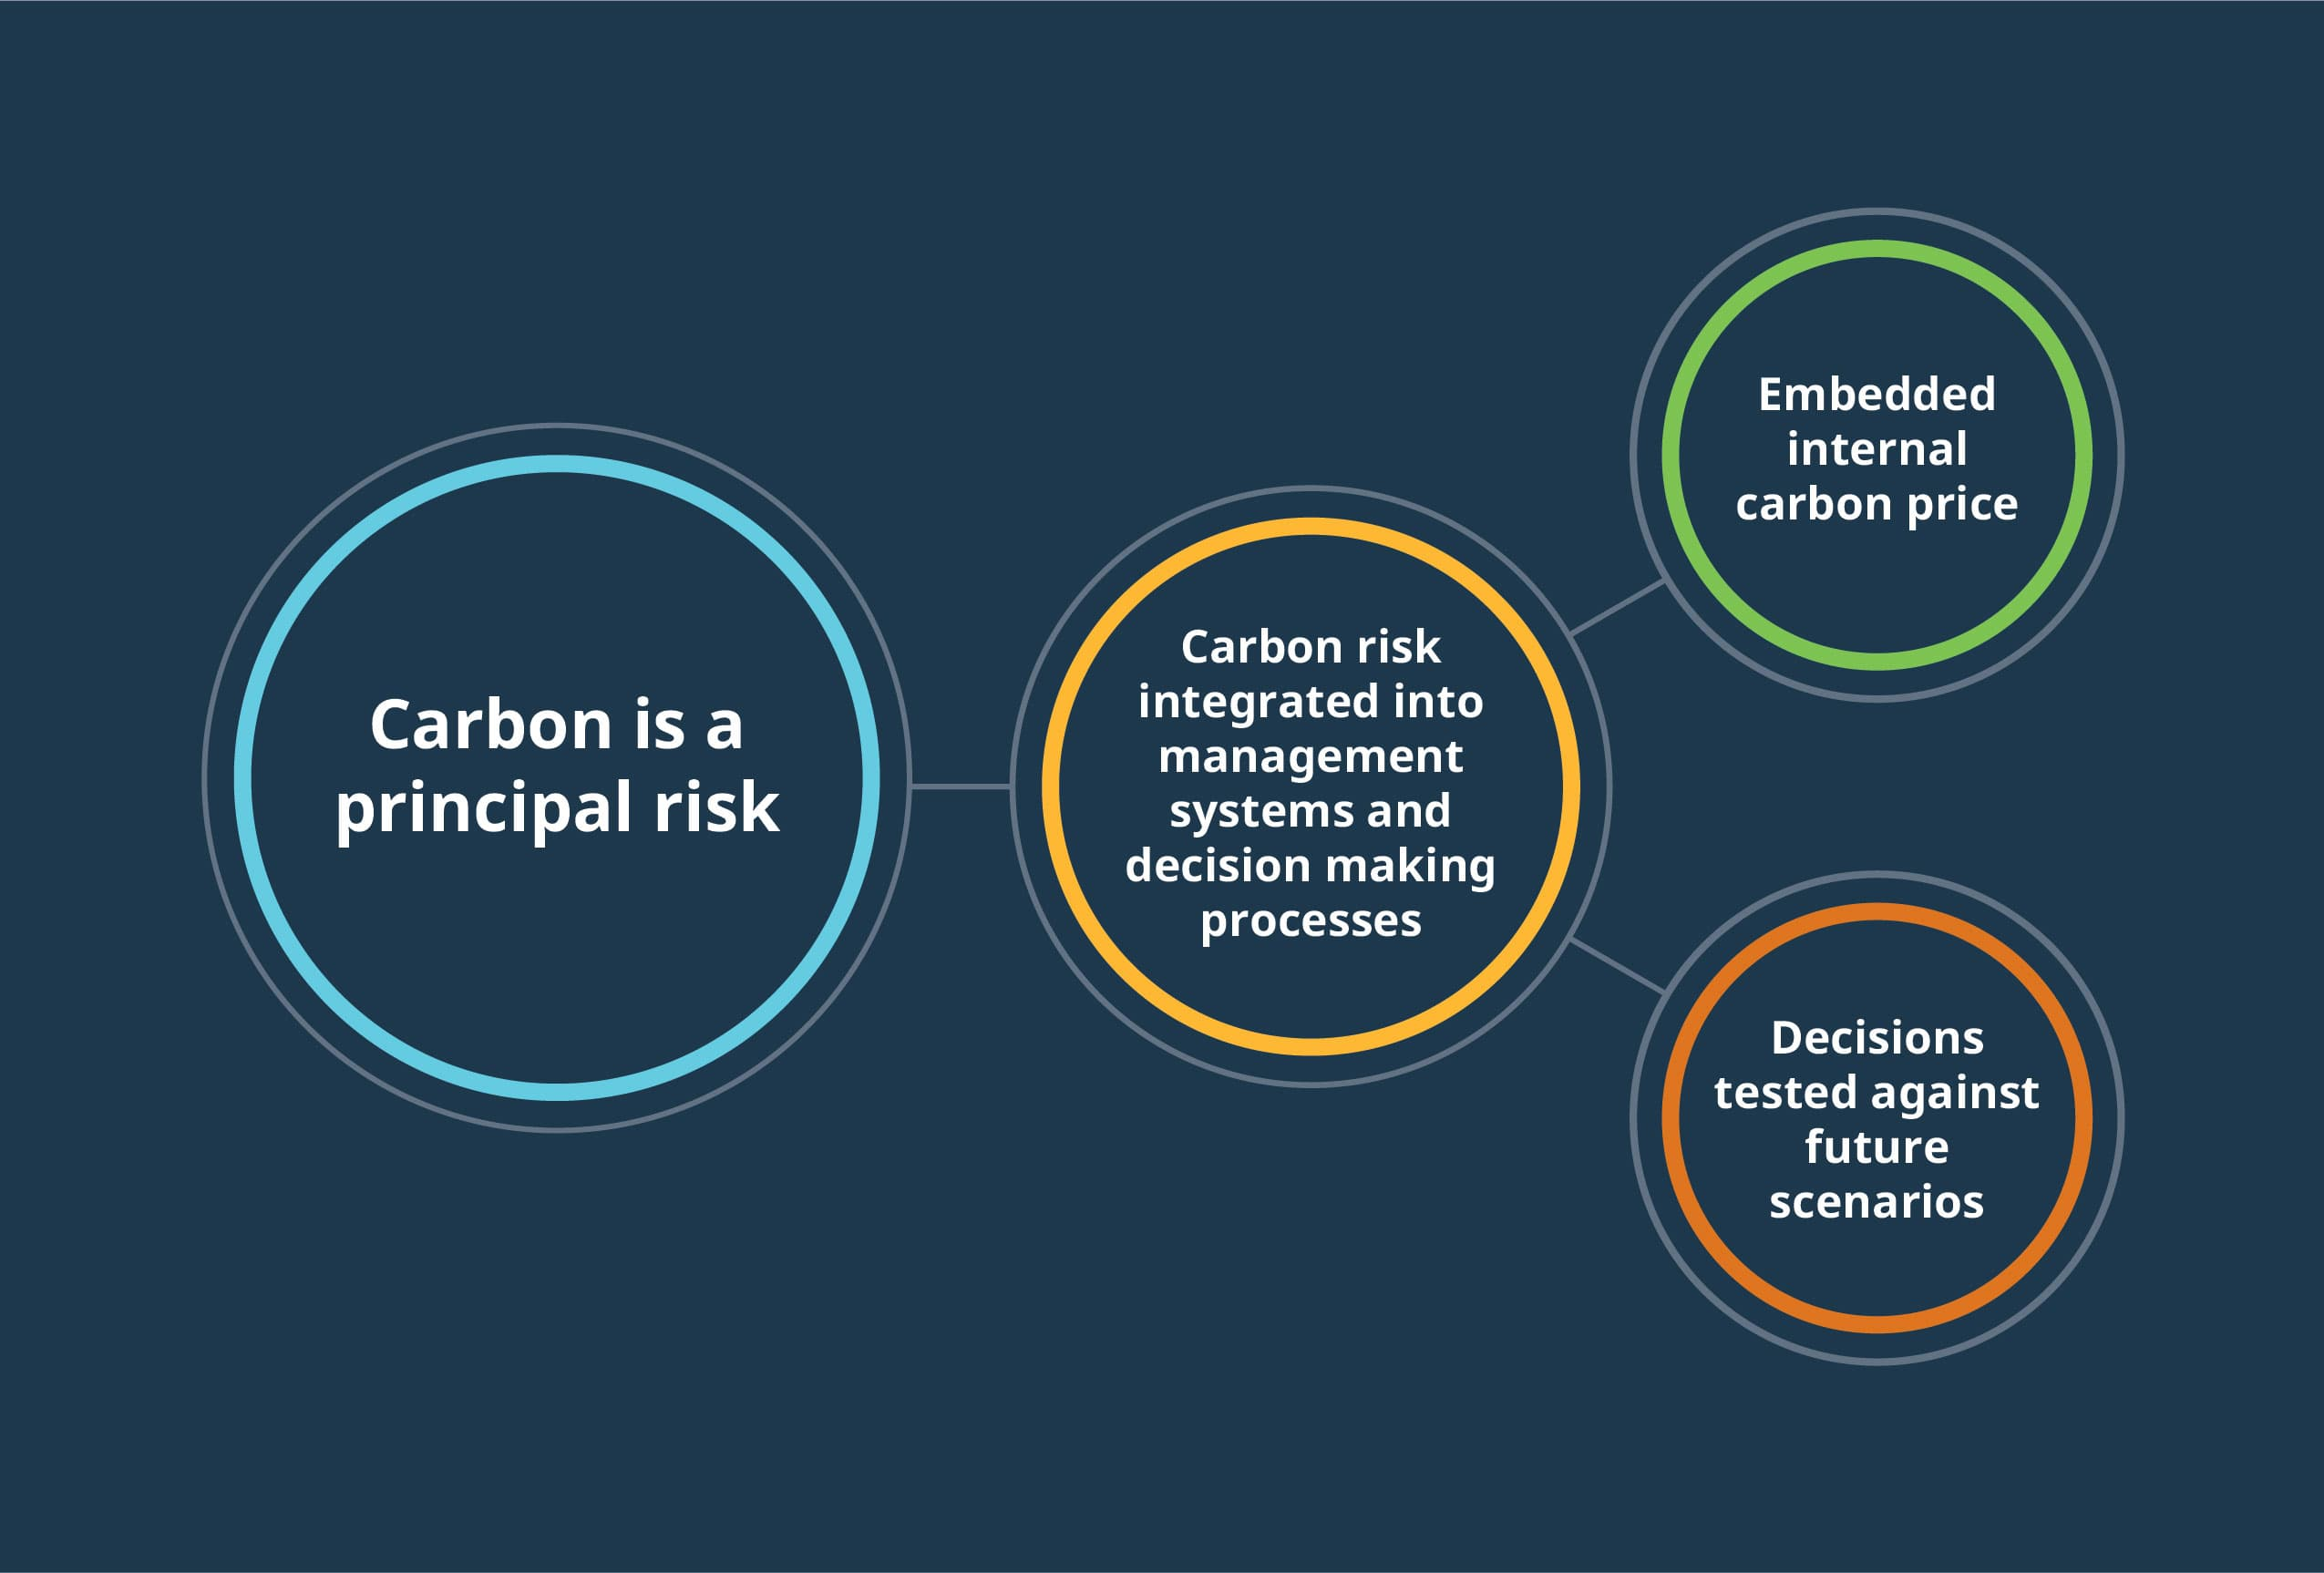 An illustrative graphic that shows how carbon is a principal risk but can be integrated into management systems to be tested against future scenarios